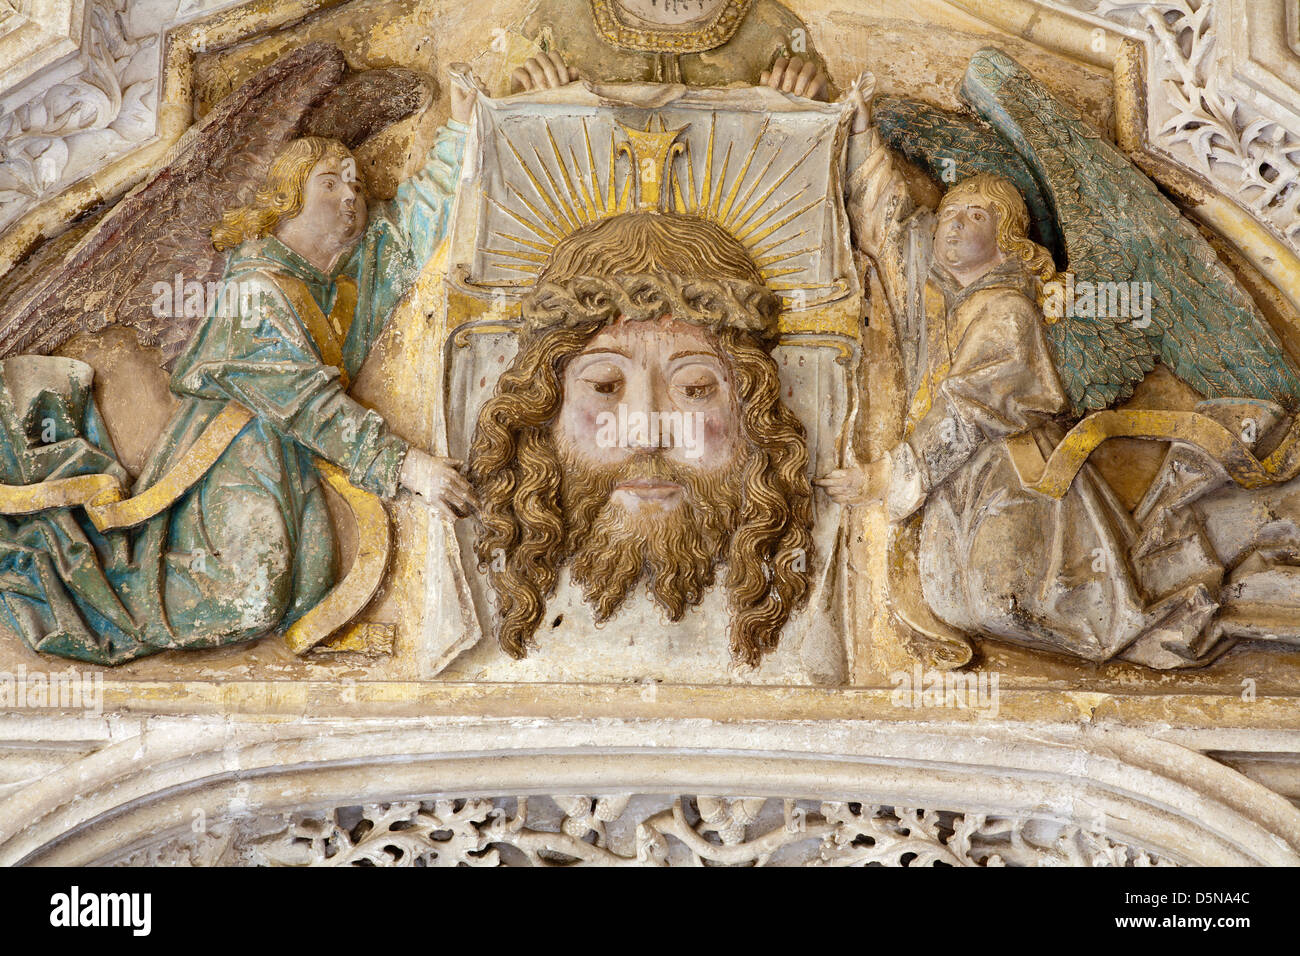 TOLEDO - MARCH 8: Detail from portal of Gothic atrium of Monasterio San Juan de los Reyes or Monastery of Saint - Stock Image